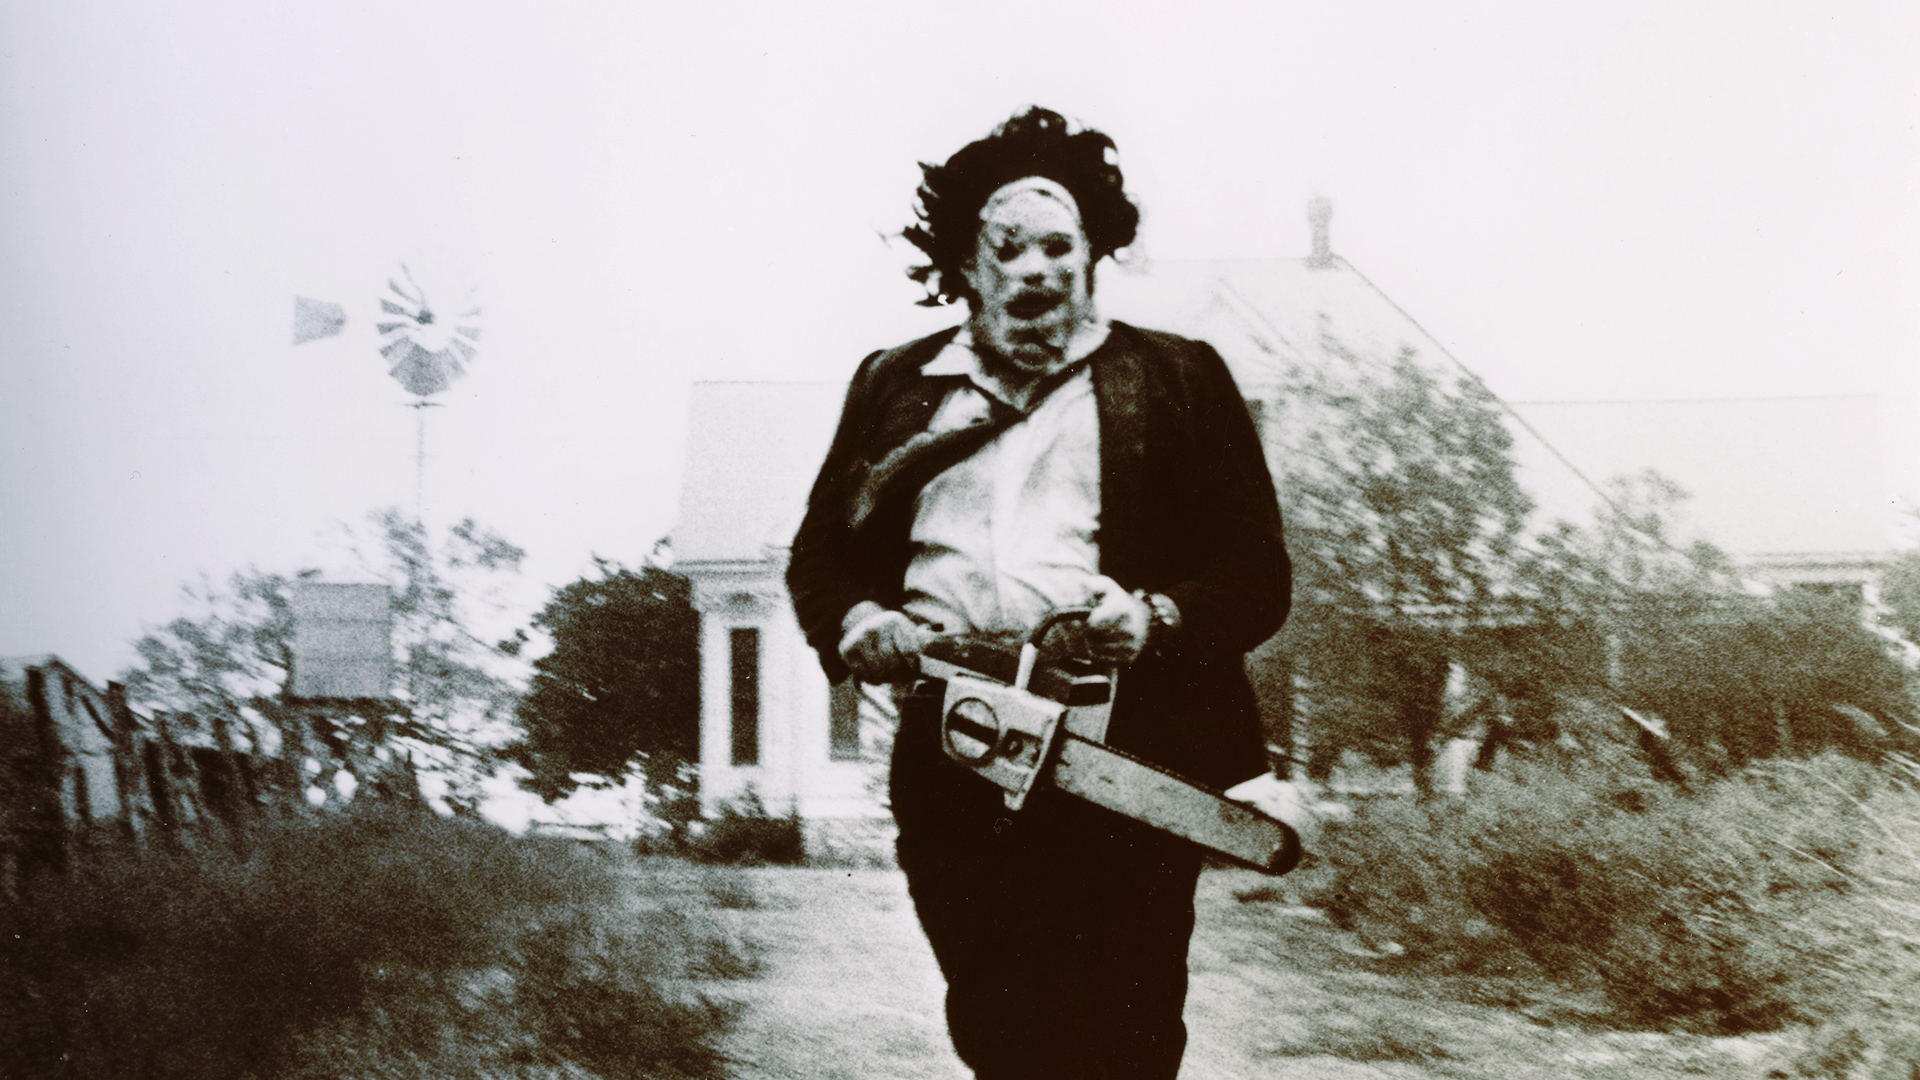 3016628-poster-p-1-leatherface-speaks-chainsaw-massacre-star-revisits-sweltering-house-of-horror_0.jpg